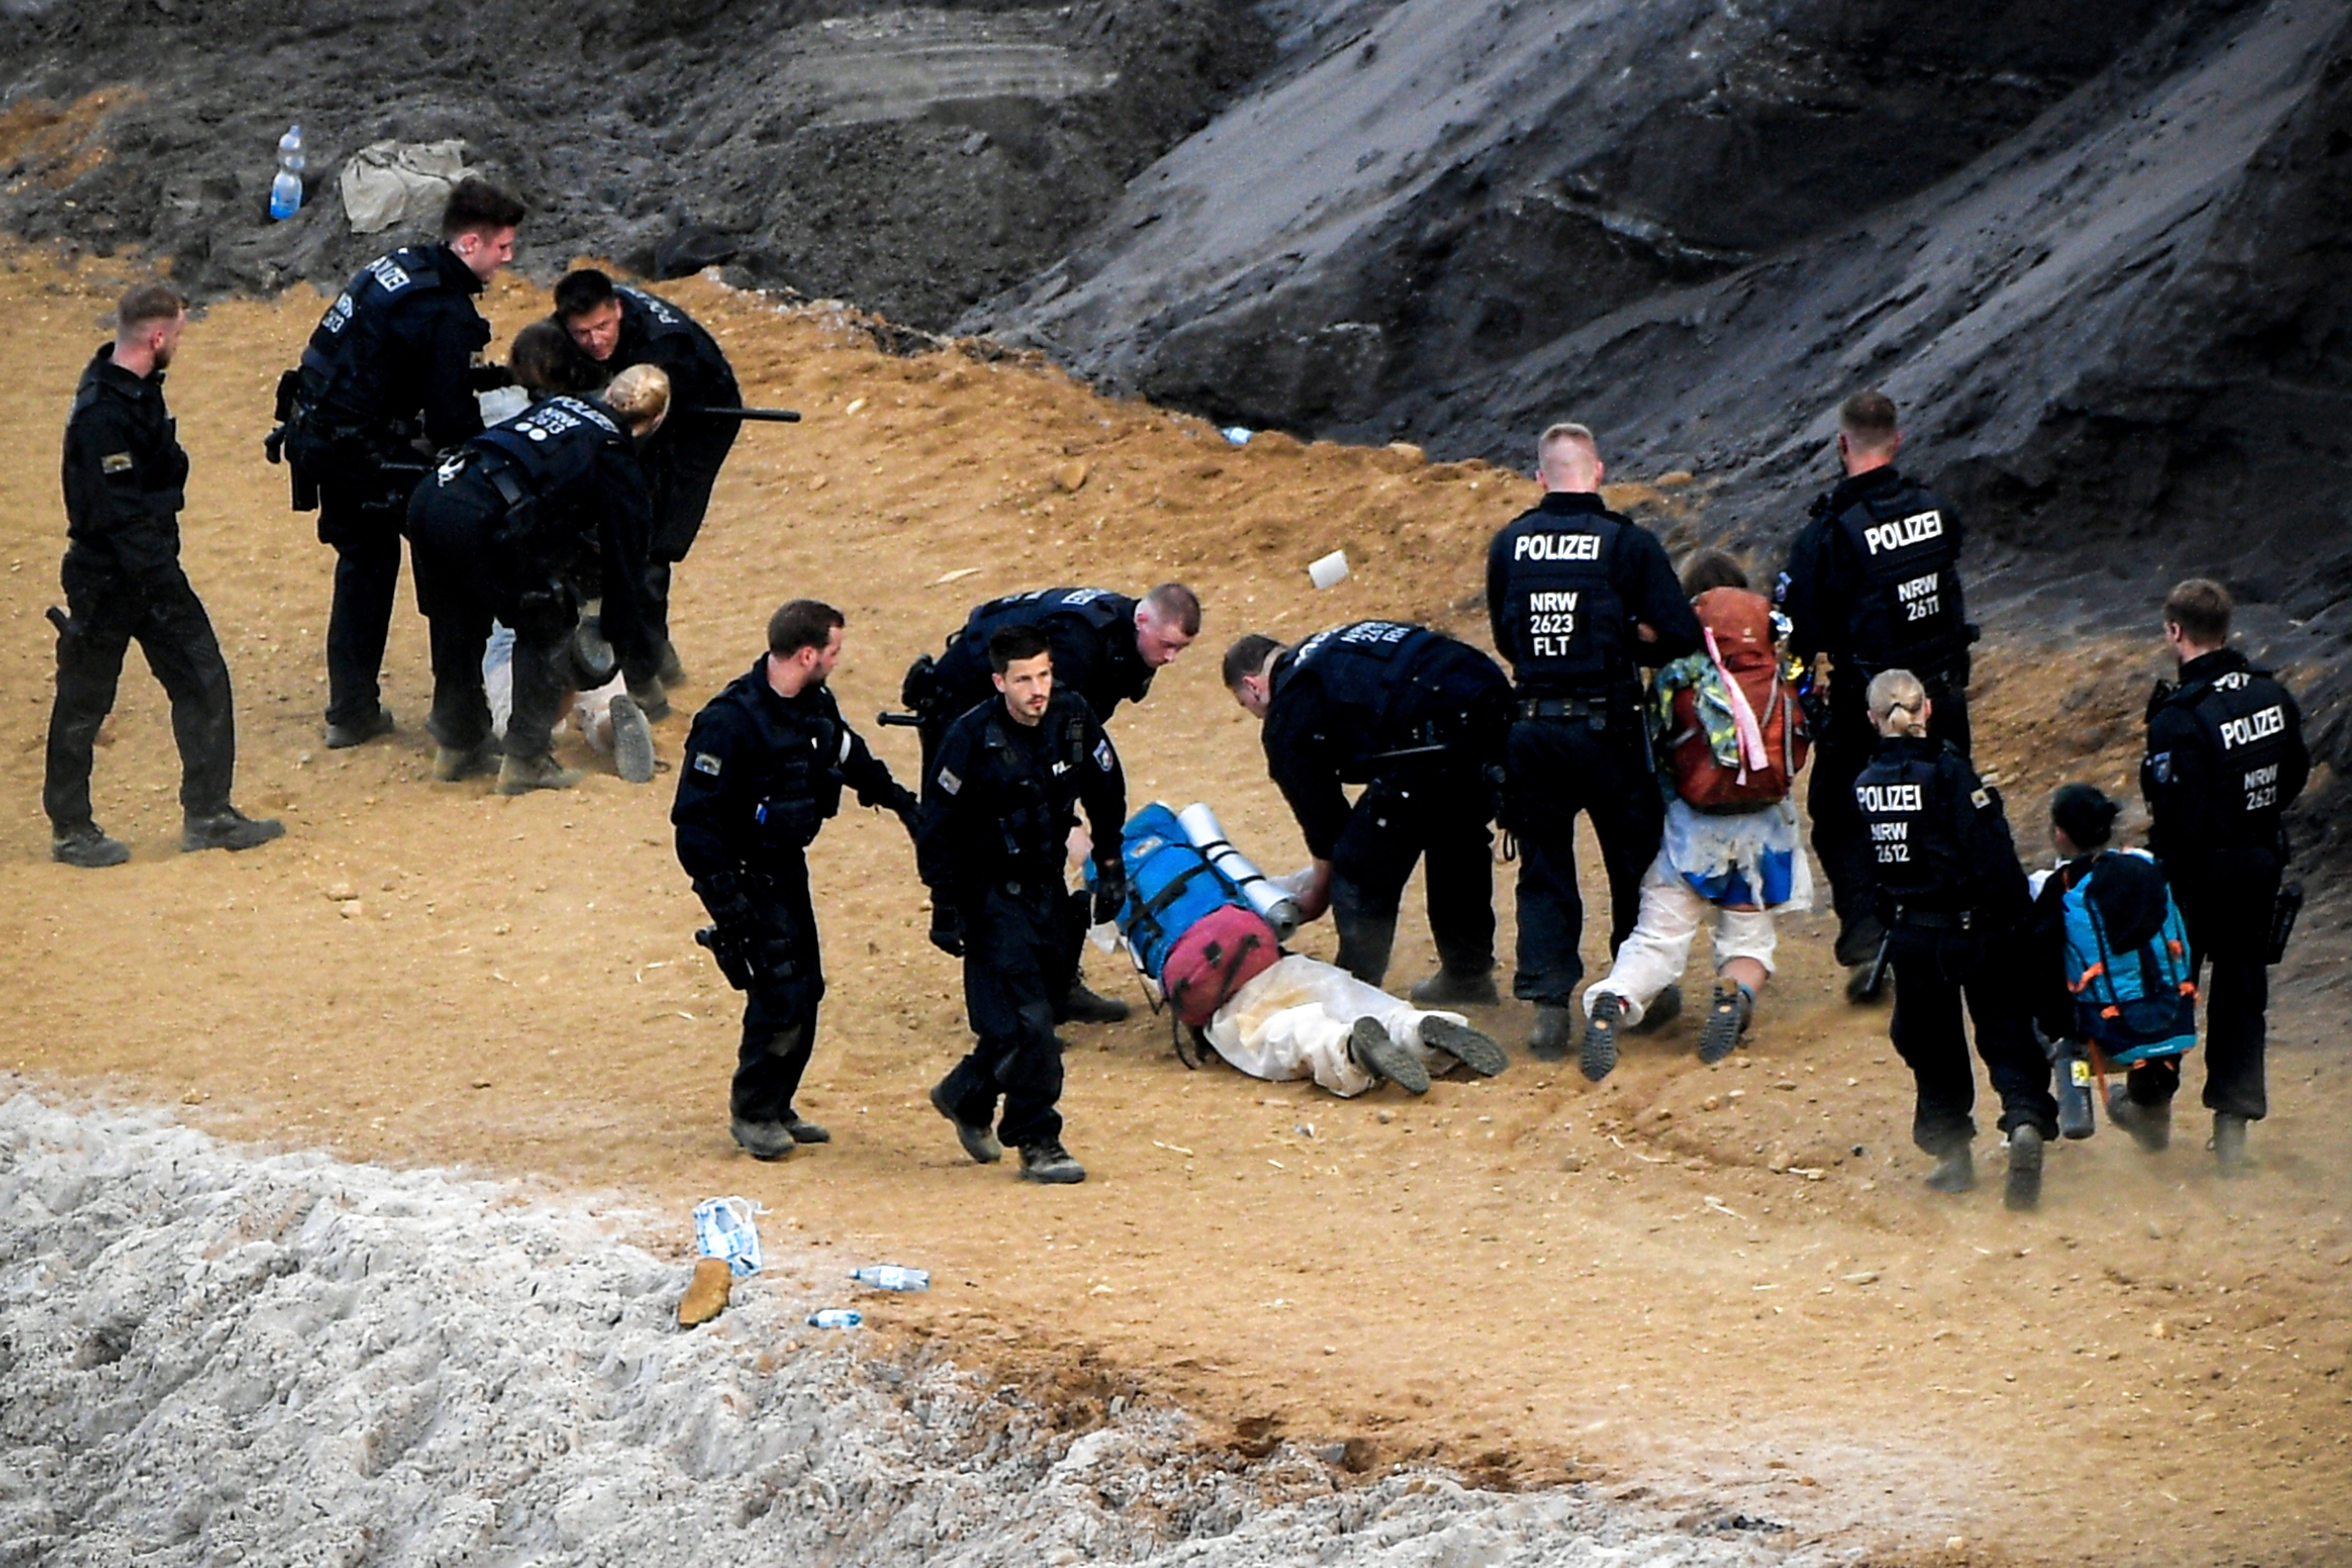 Activists taking part in the 'Ende Gelaende' protest initiative face a police cordon in a pit in the Rhenish coal mining area in western Germany.